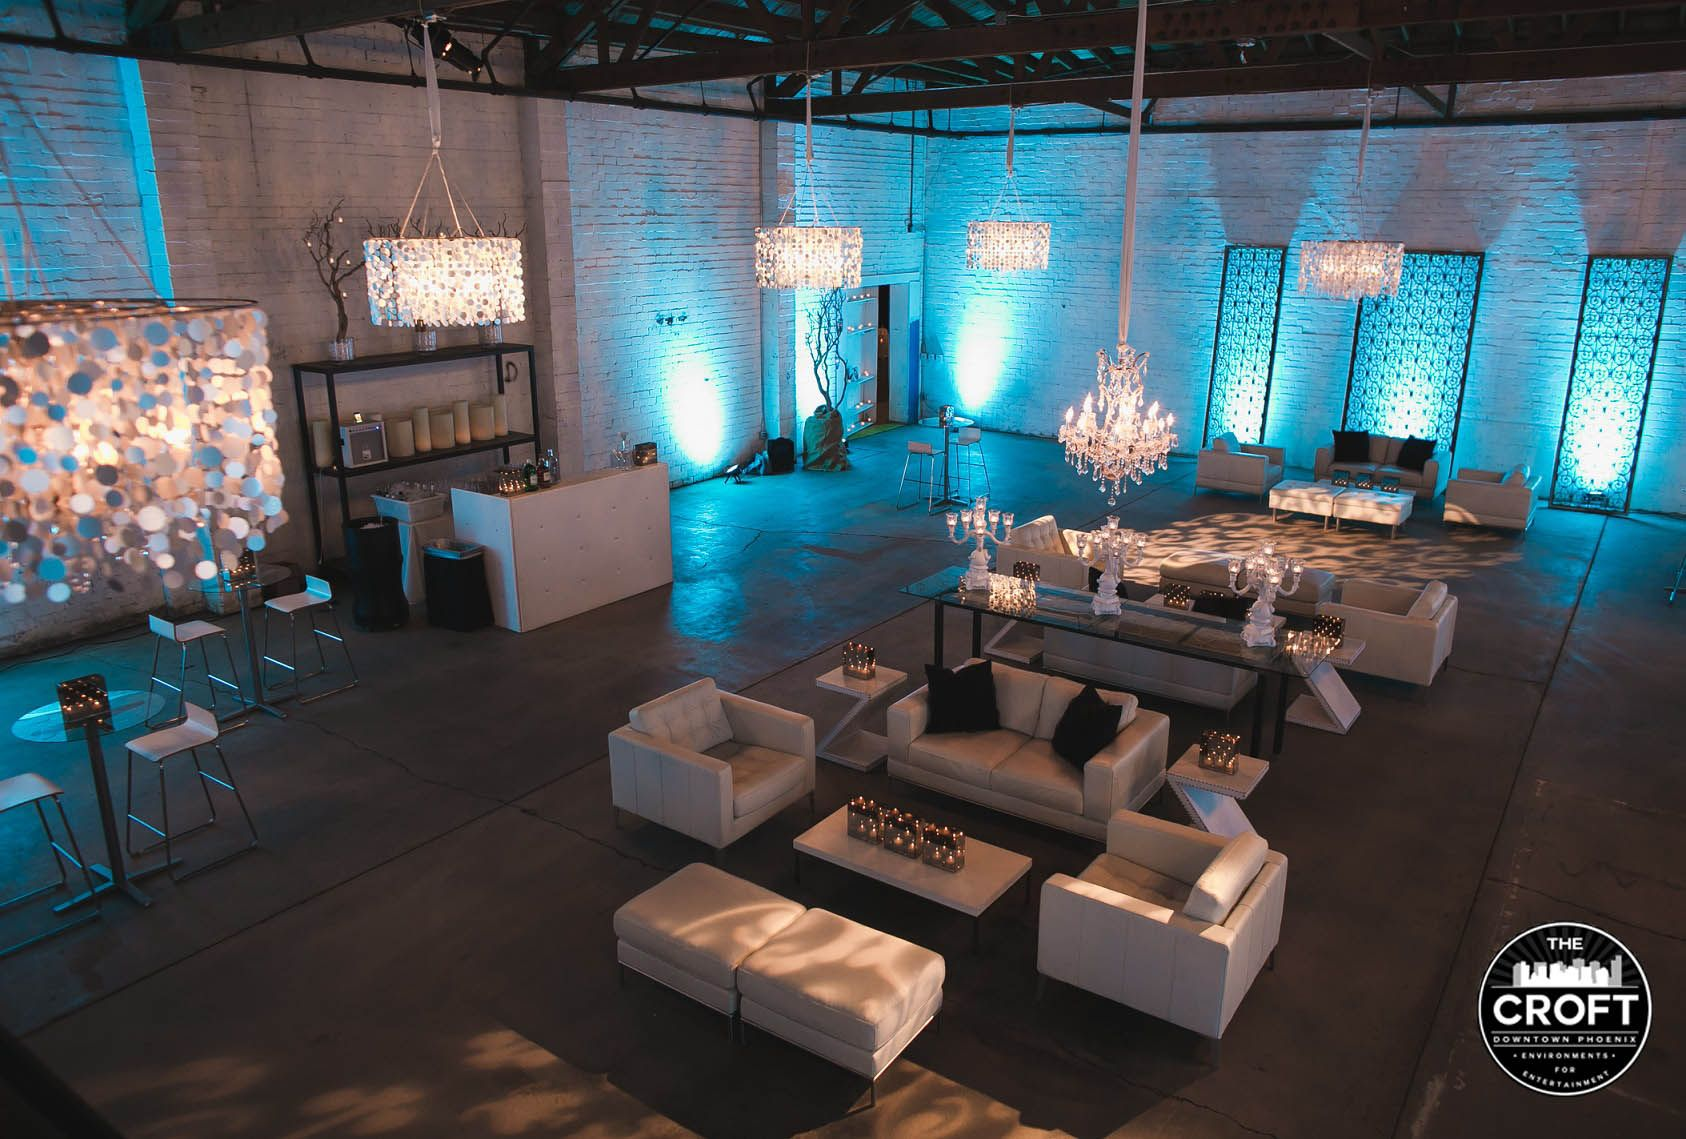 Gallery 1028 warehouse wedding venue in Chicago with loft like ...